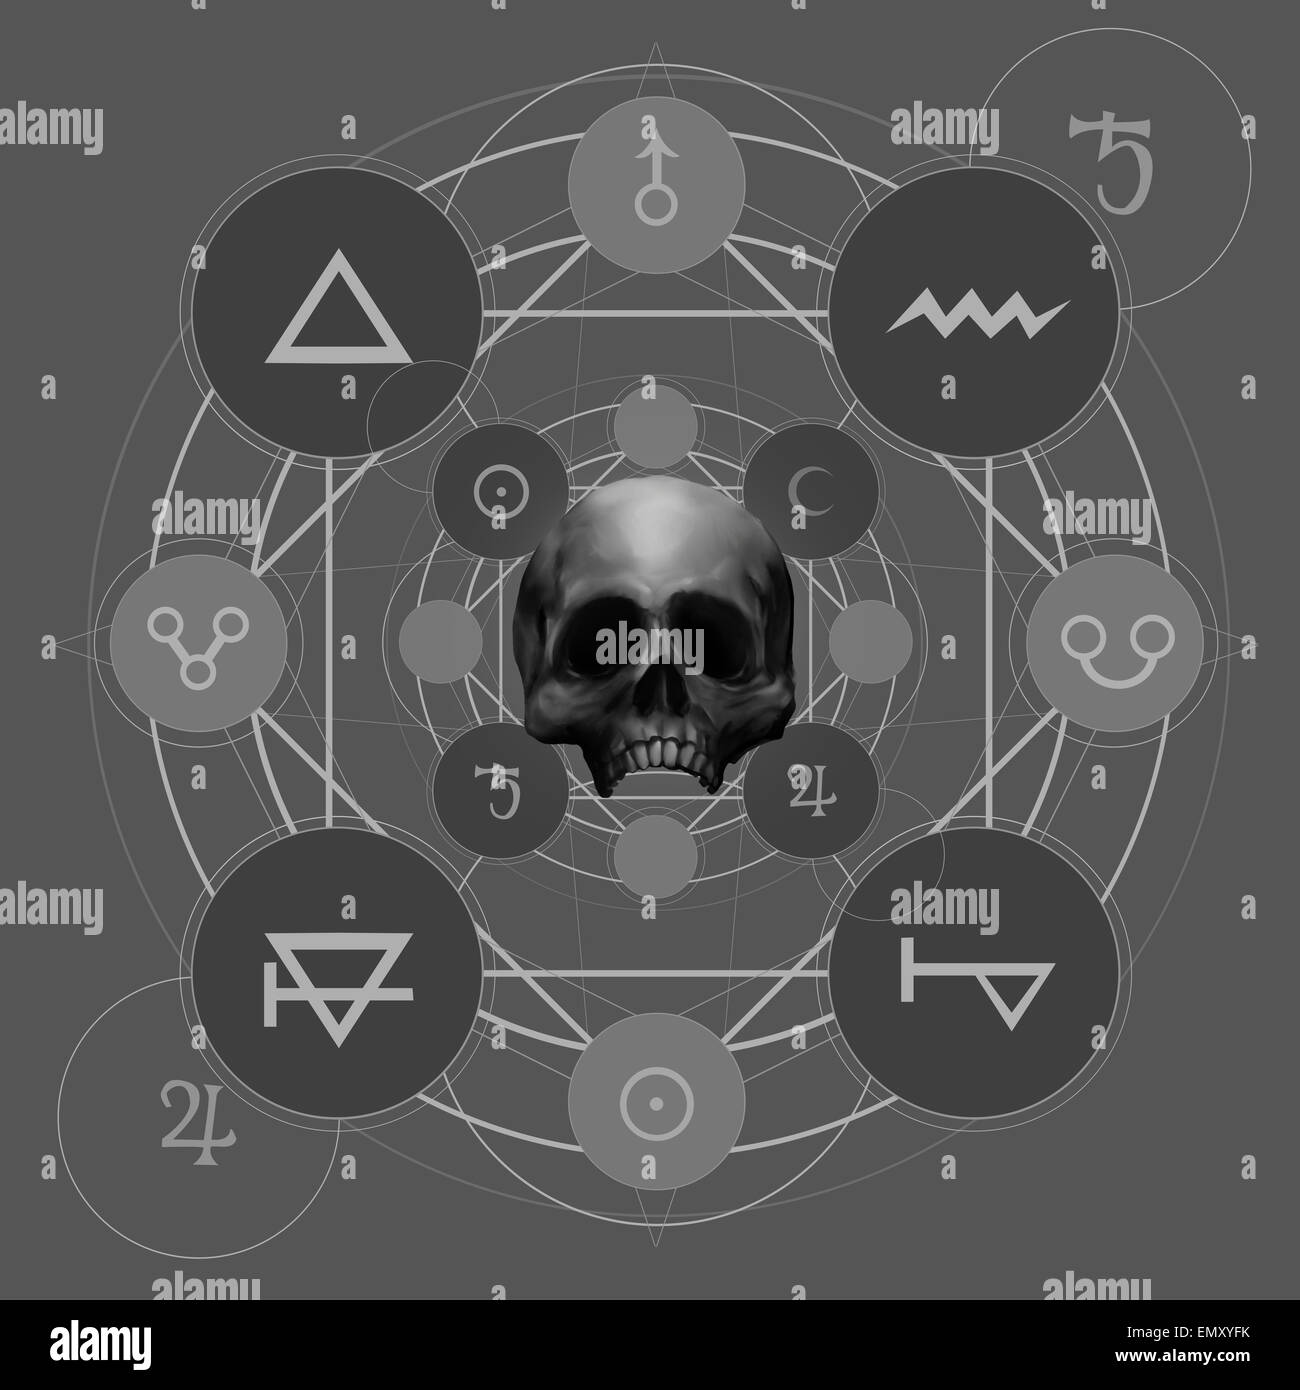 Mystic pentacle. Fantasy alchemy pentacle with signs and skull illustration. - Stock Image